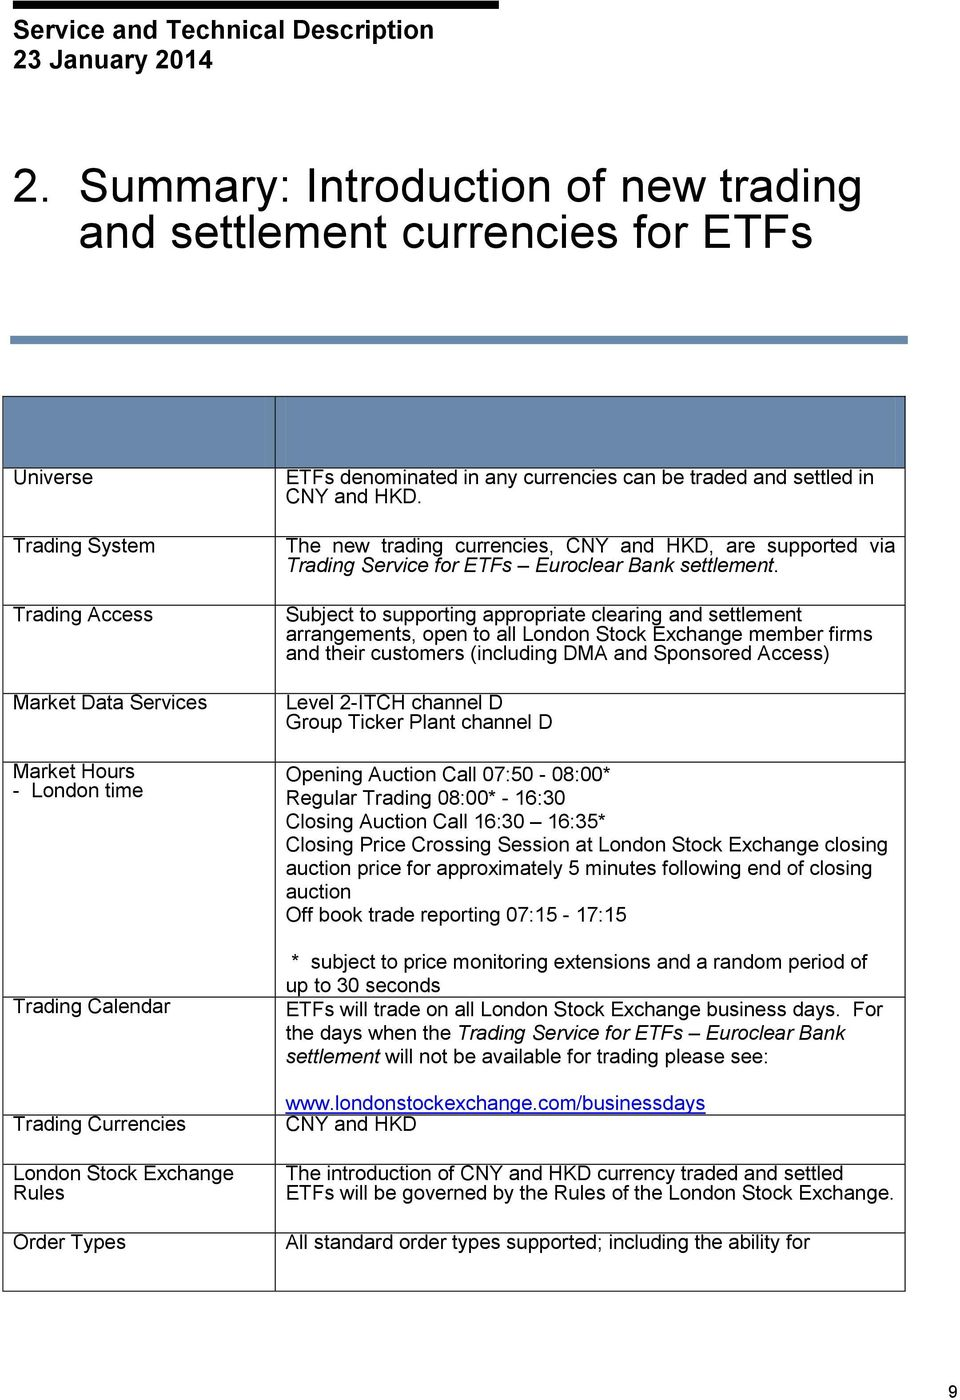 The new trading currencies, CNY and HKD, are supported via Trading Service for ETFs Euroclear Bank settlement.